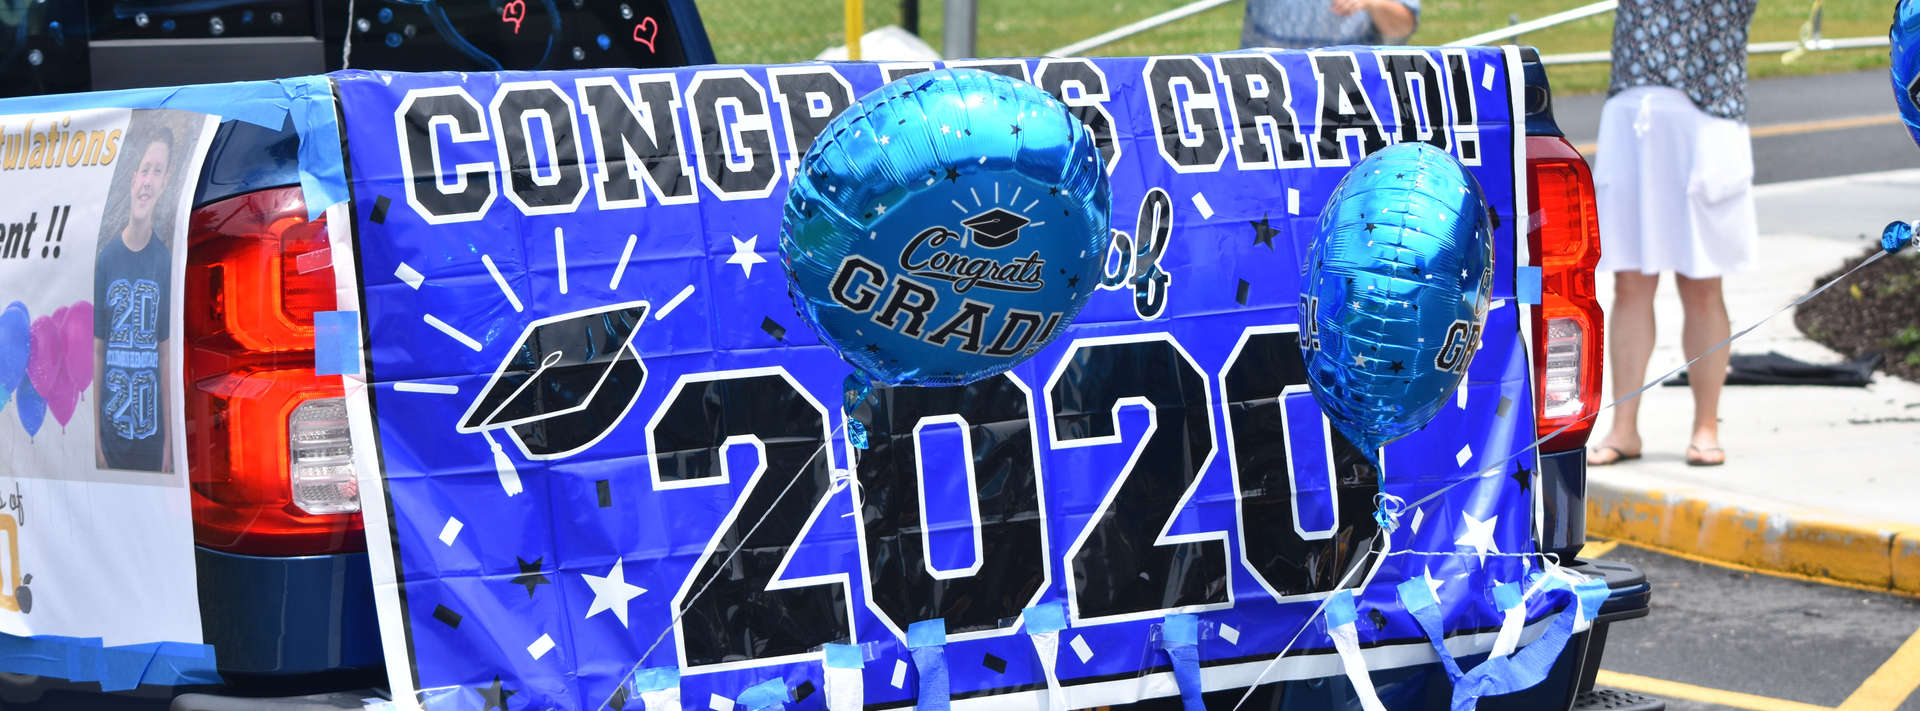 Class of 2020 banner on back of car